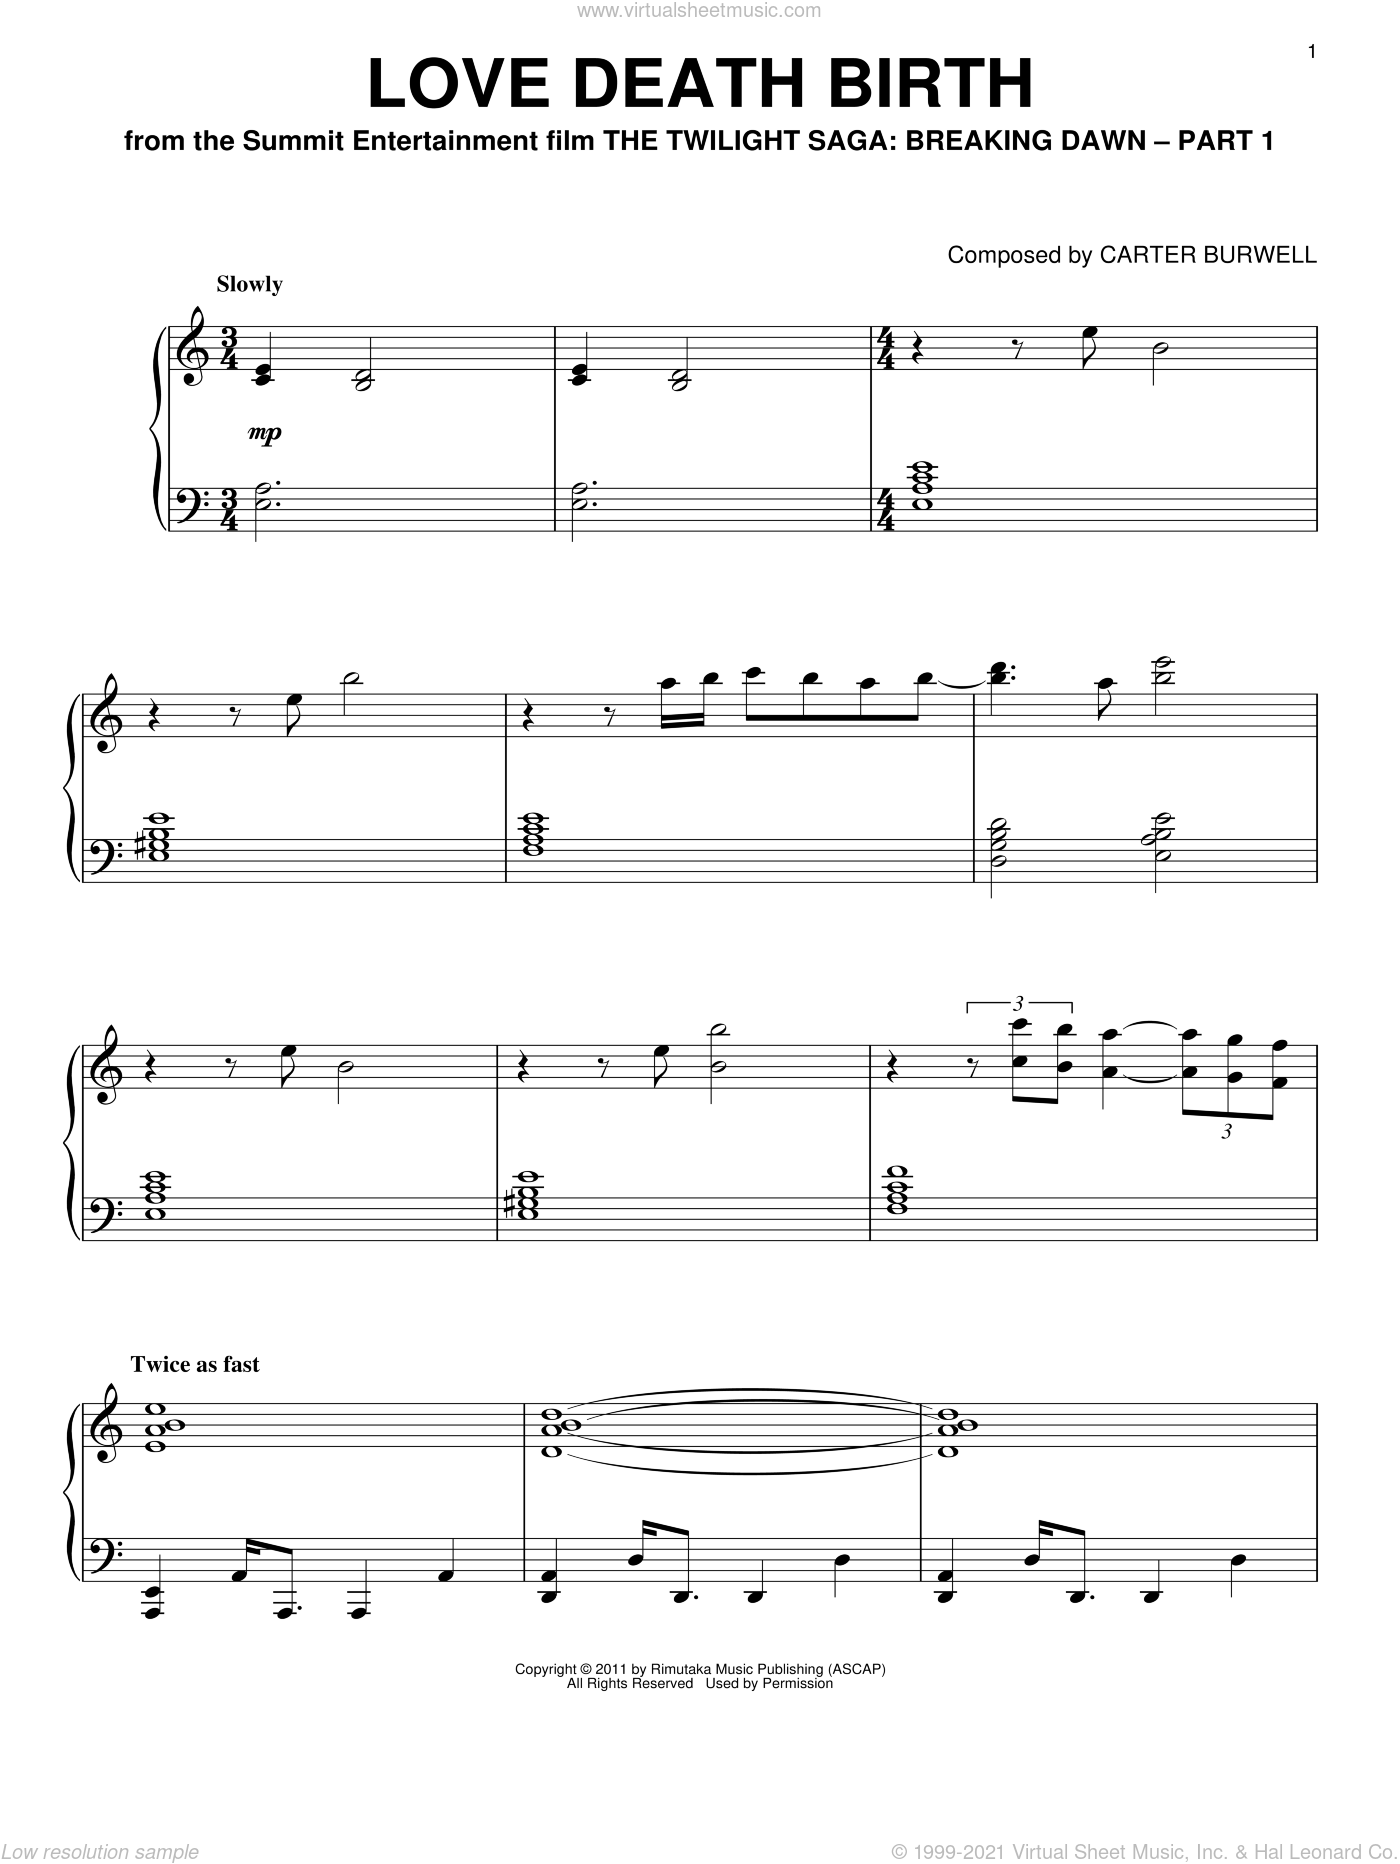 Love Death Birth sheet music for piano solo by Carter Burwell and Twilight: Breaking Dawn (Movie), intermediate piano. Score Image Preview.